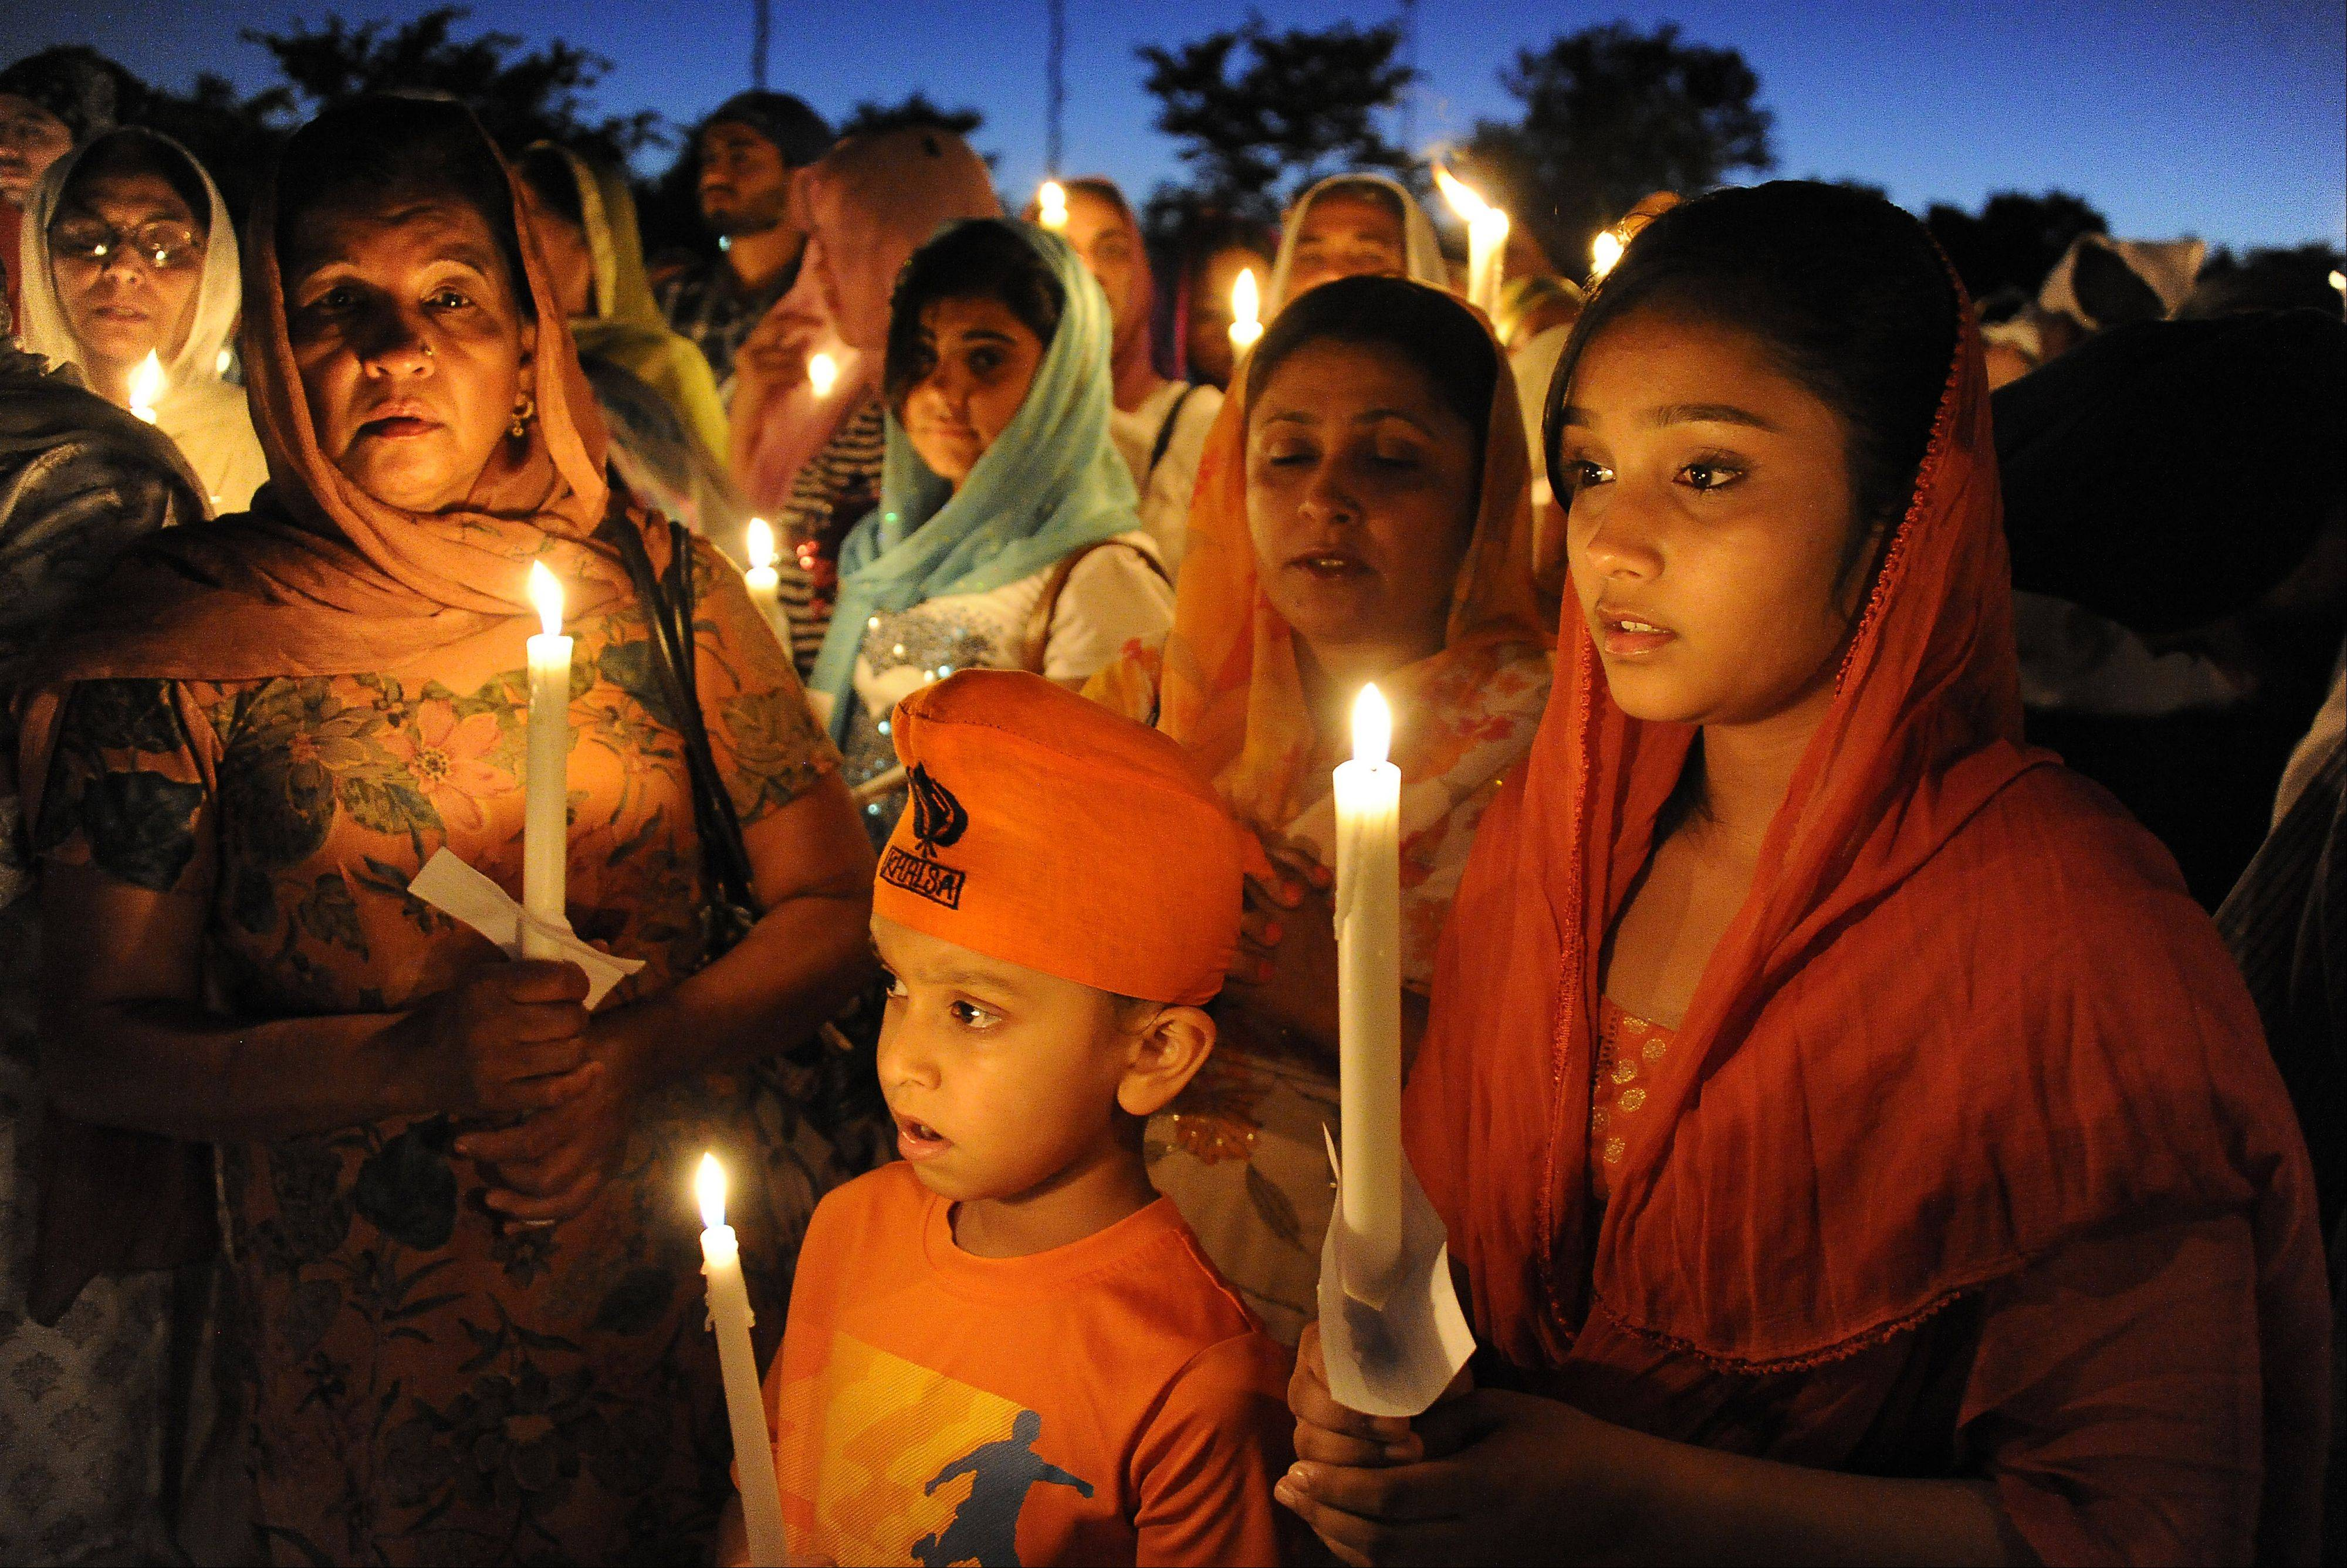 Members of the Palatine Gurdwara held a candlelight vigil last year for victims of the Sikh temple shooting near Milwaukee.